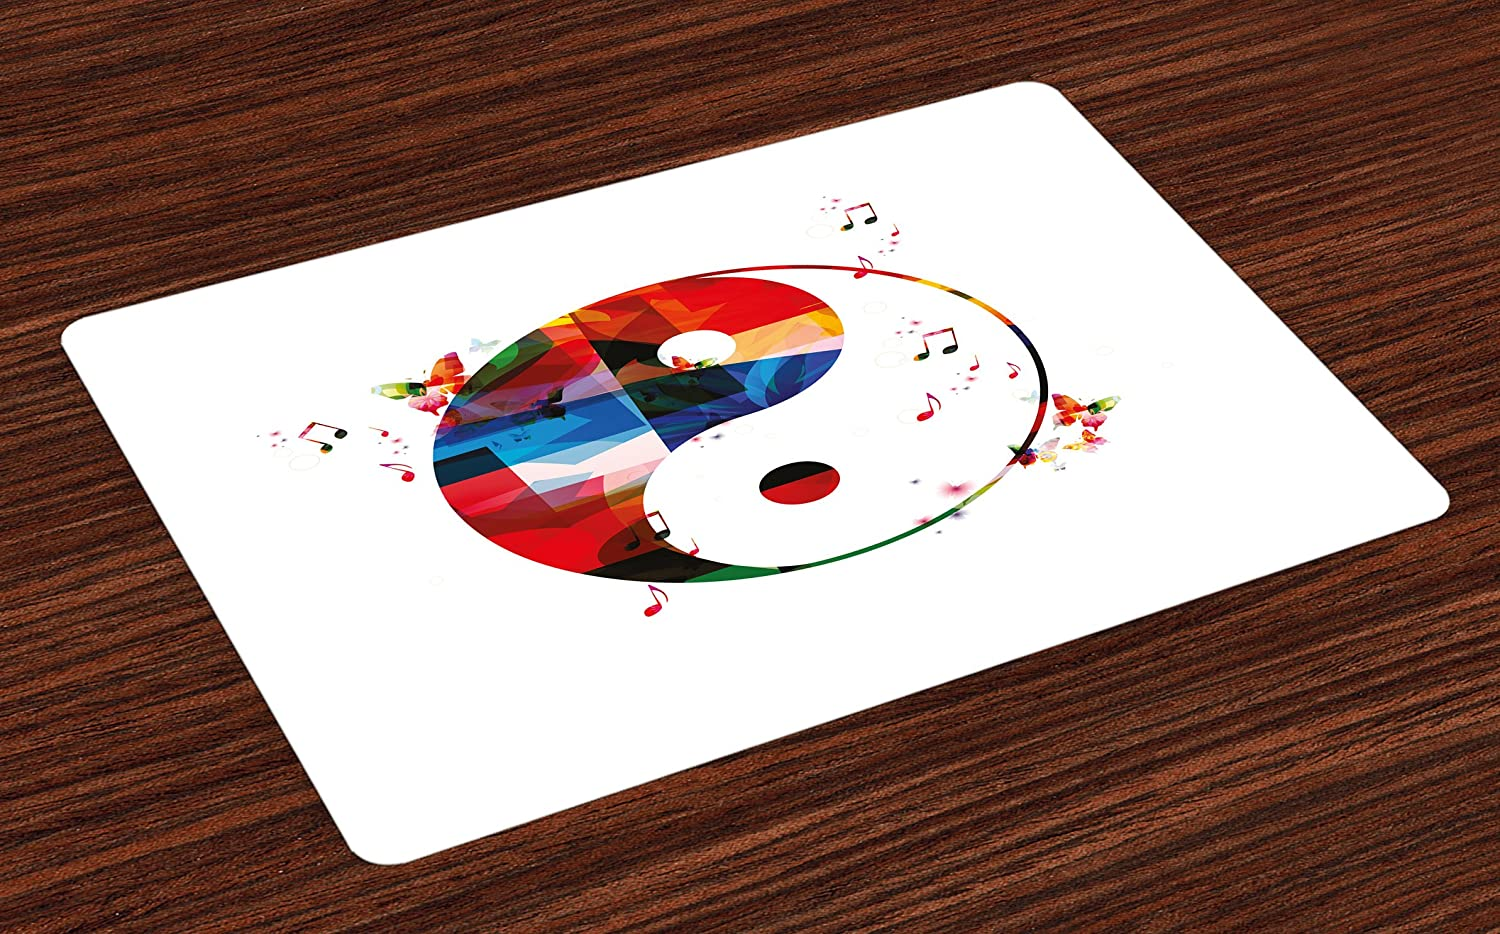 Ying Yang Bad : Amazon lunarable ying yang place mats set of yin yang